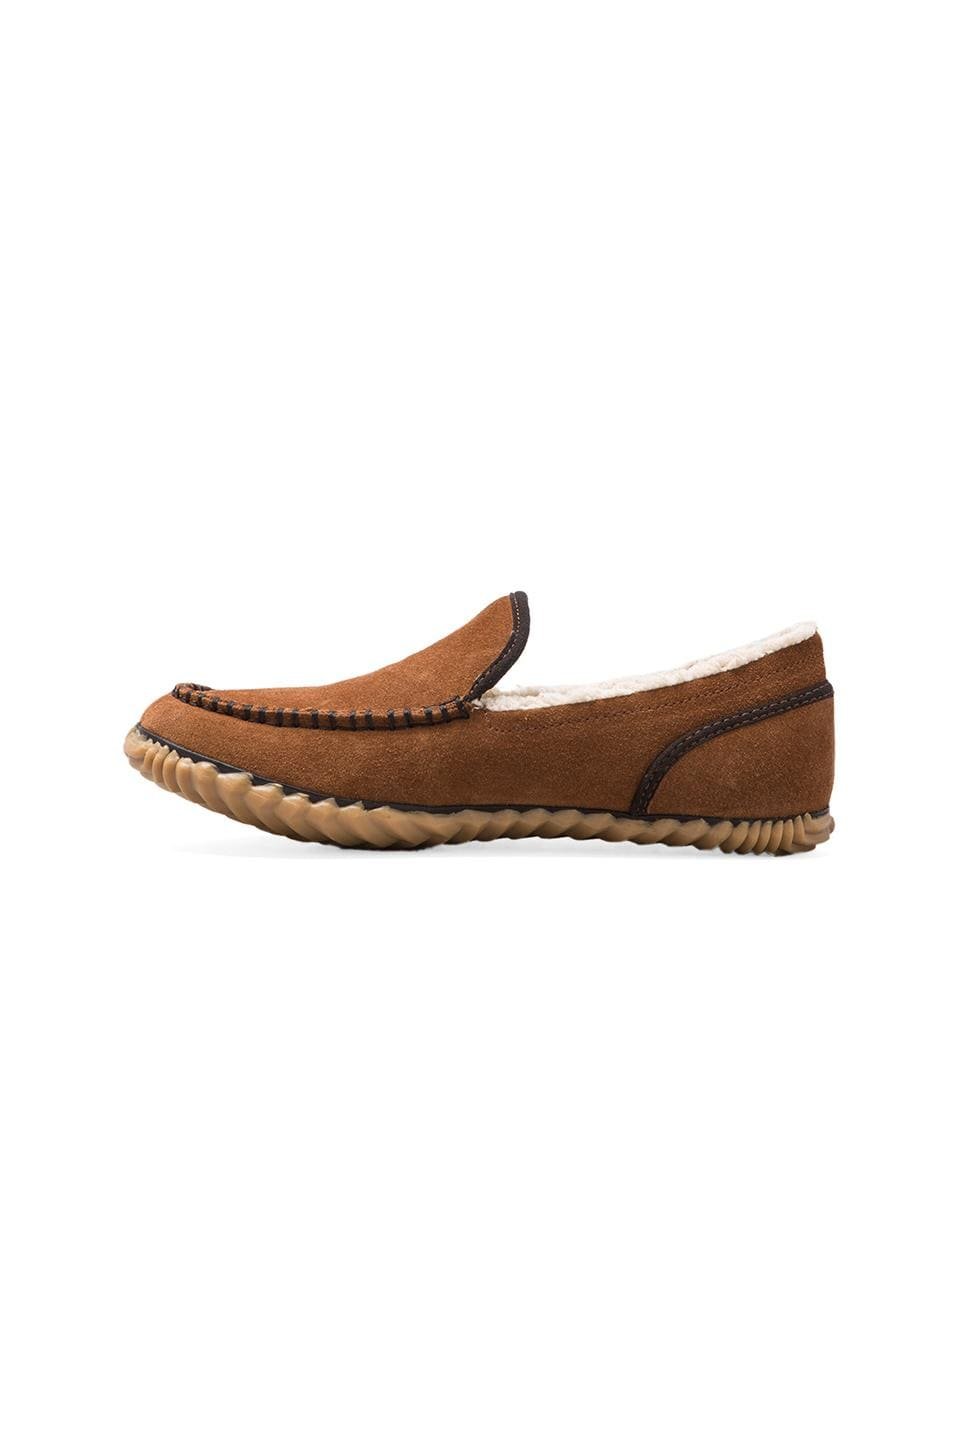 Sorel Dude Moc Slipper in Grizzly Bear